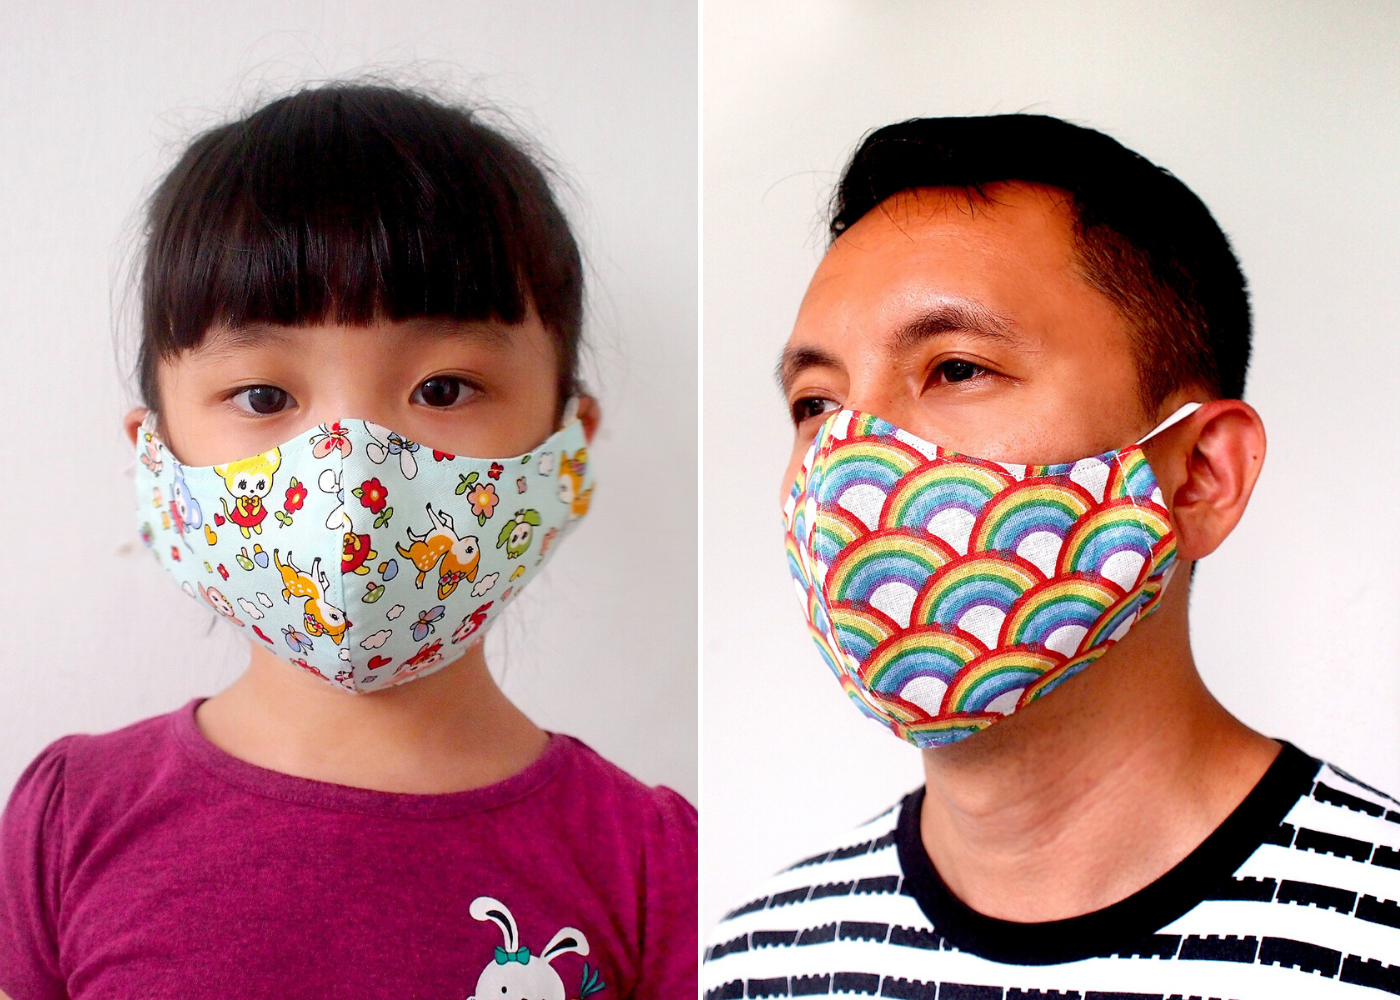 LittleOddForest face masks